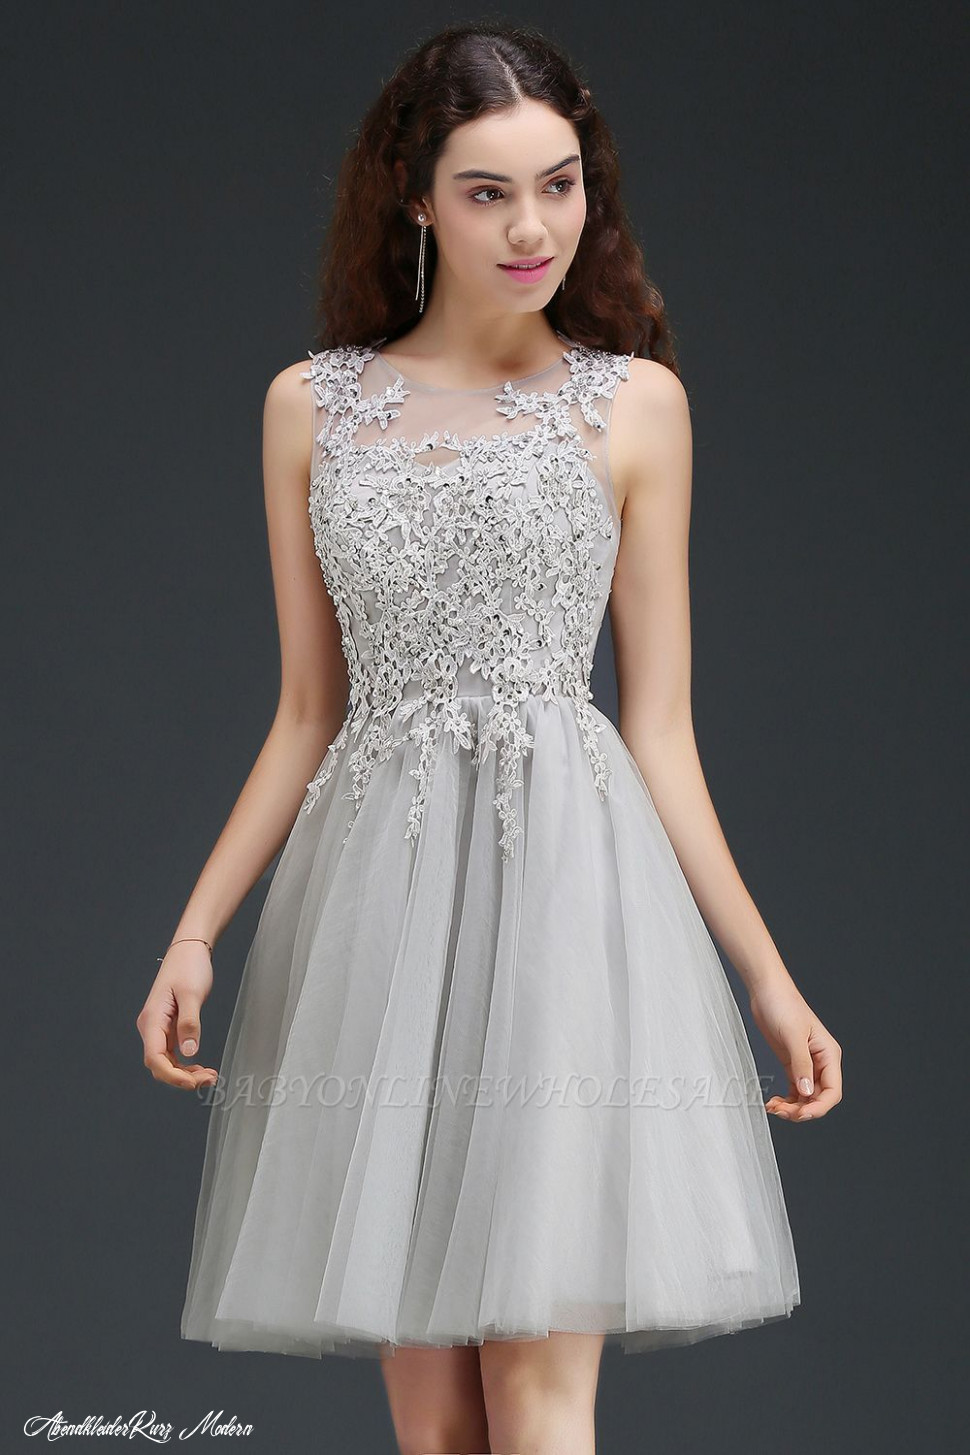 anna a line short modern homecoming dress with lace appliques